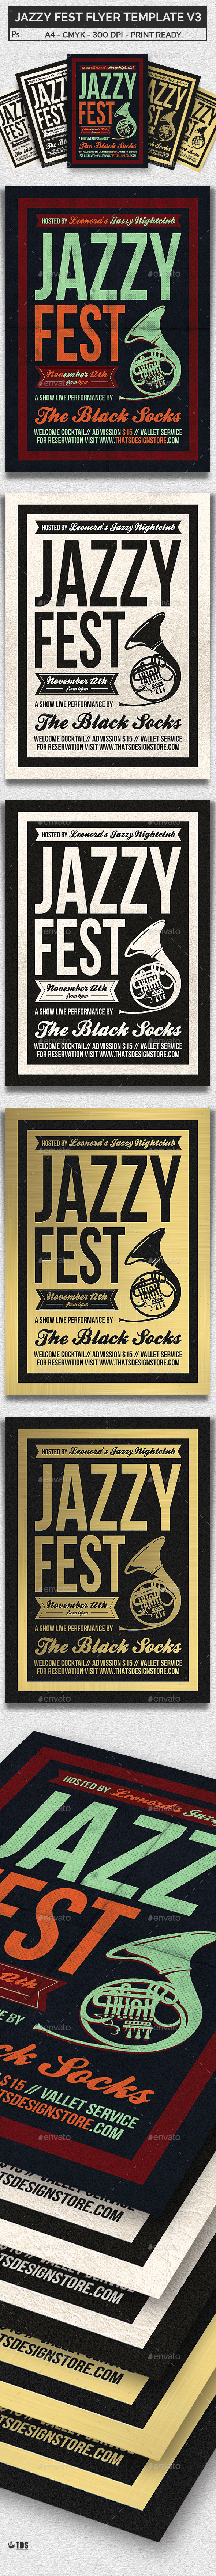 Jazzy Fest Flyer Template V3 - Concerts Events